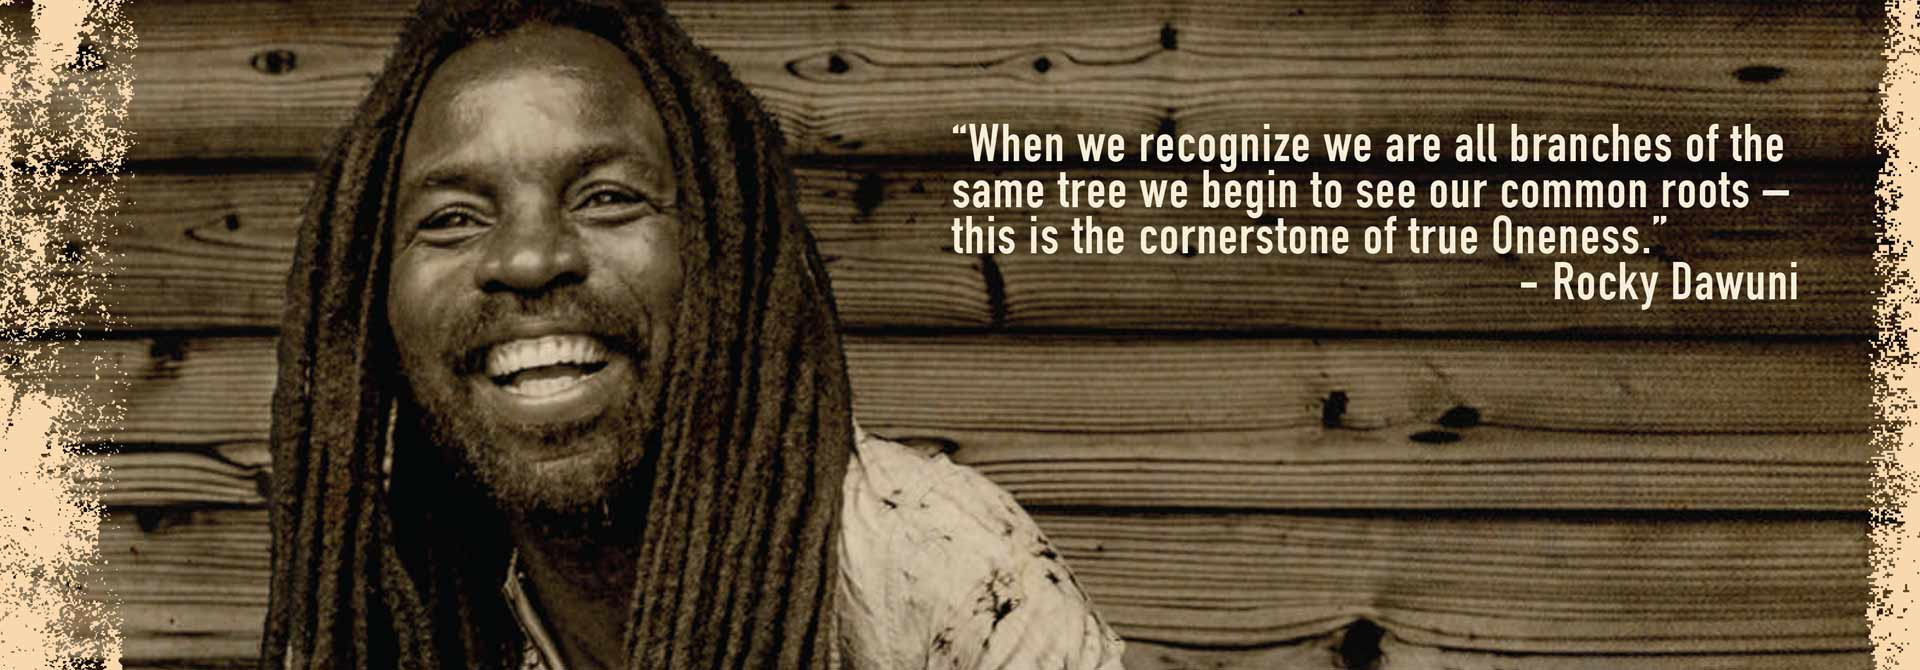 Rocky Dawuni Grammy Nomination